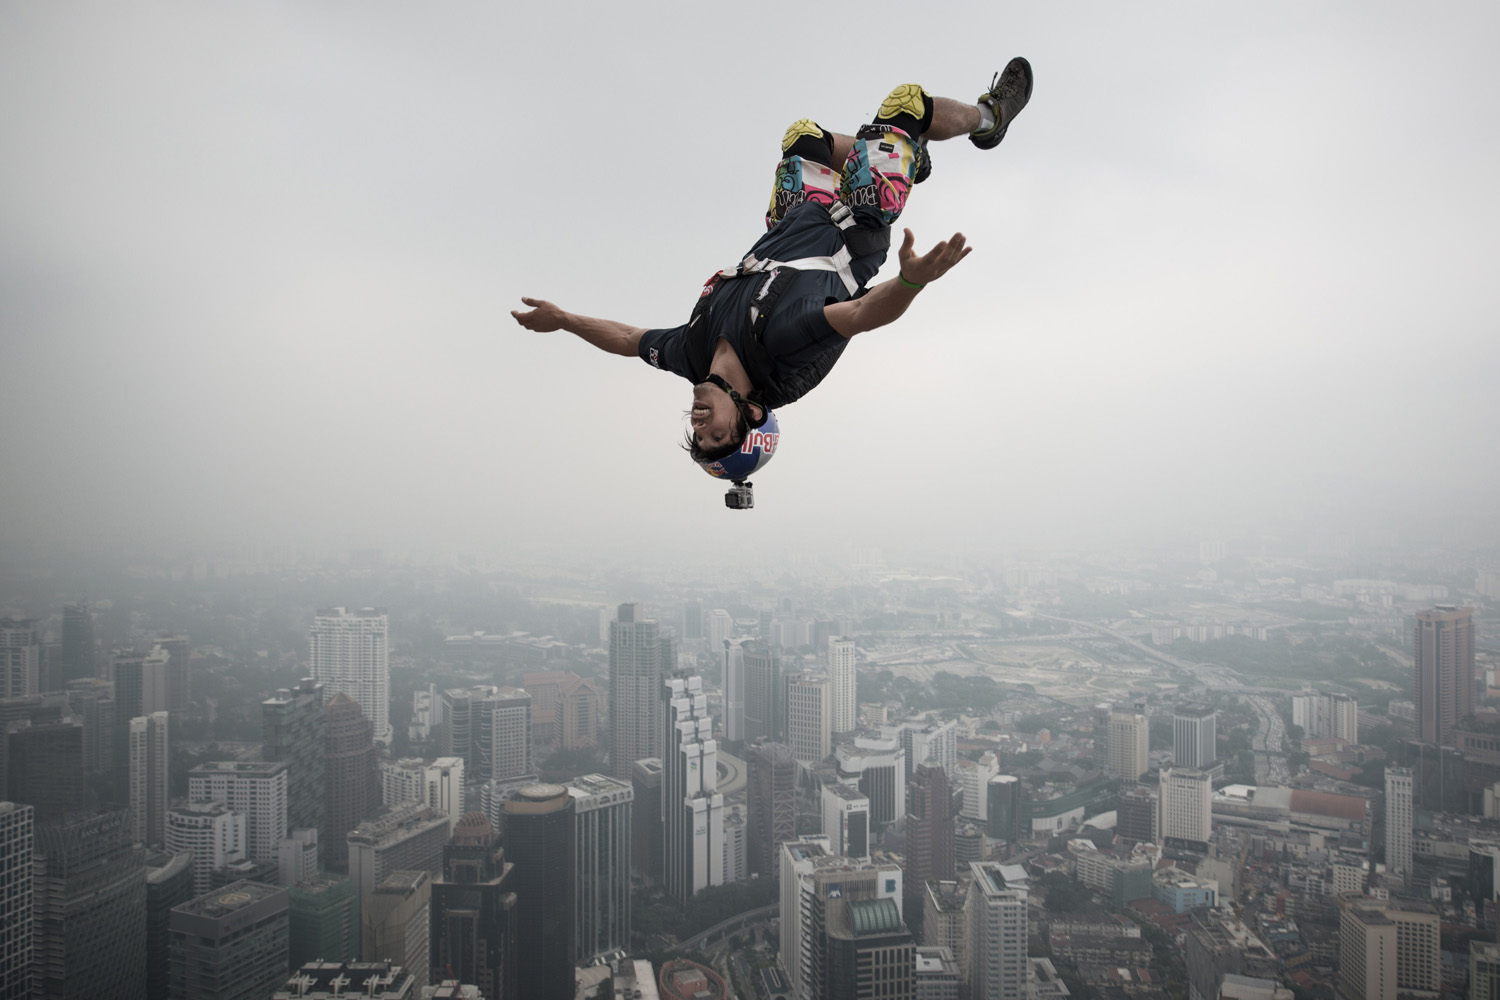 Base jumper Vincent Philippe Benjamin Reffet from France leaps from the 300-meter Open Deck of Malaysia's landmark Kuala Lumpur Tower during the International Tower Jump in Kuala Lumpur.